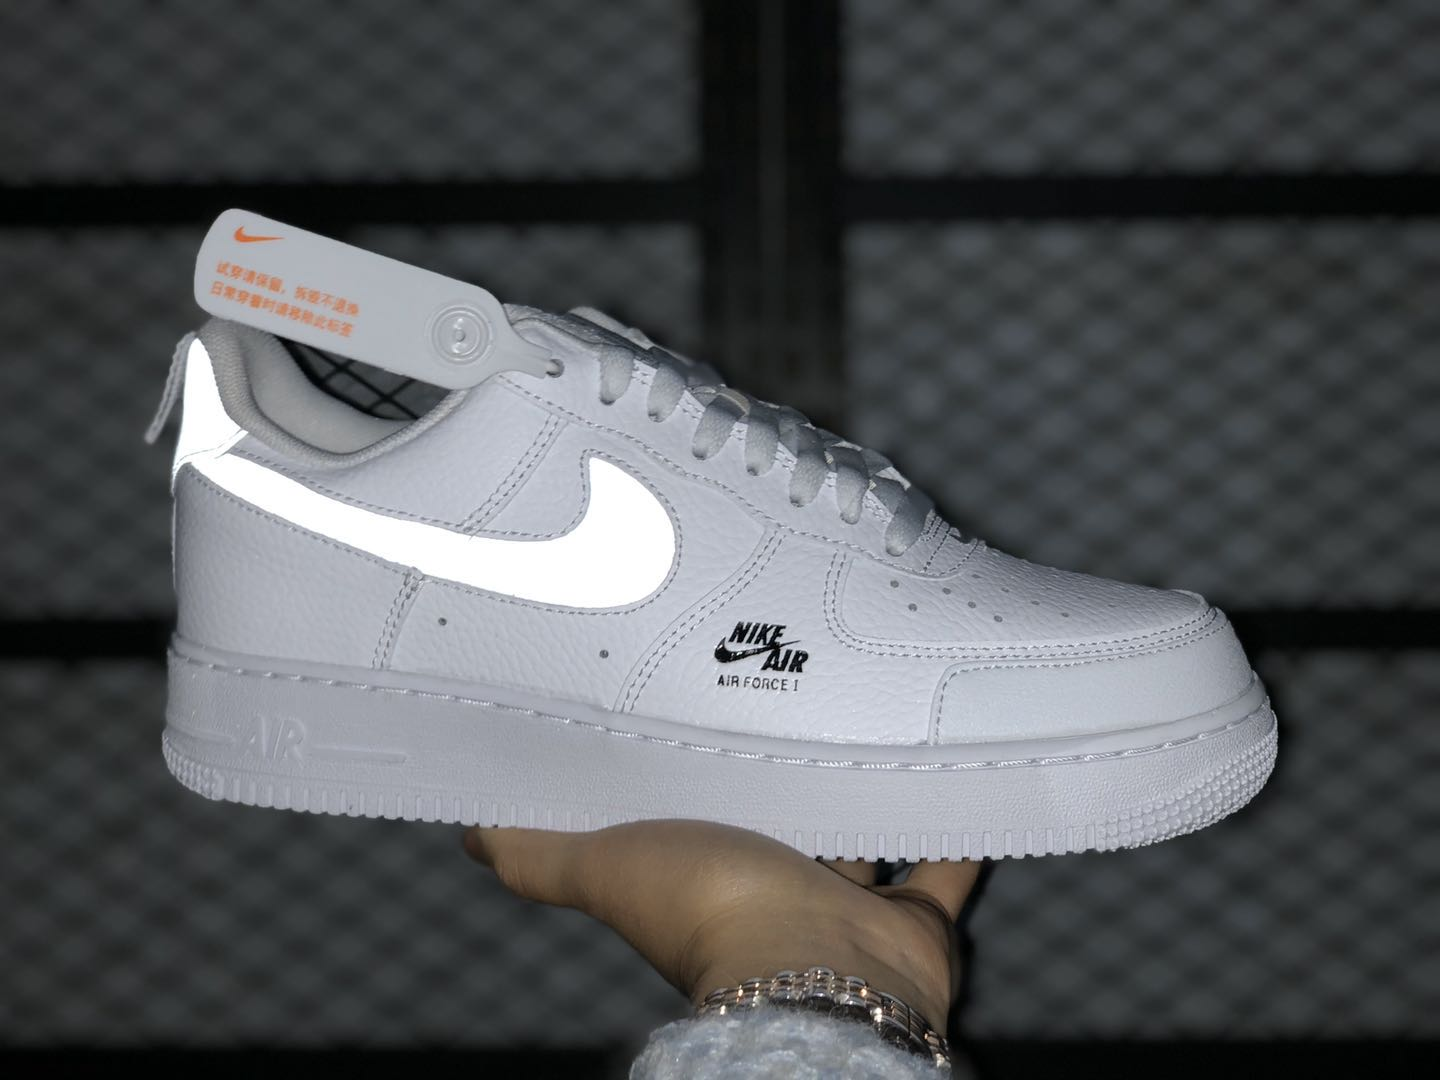 New Arrival Nike Air Force 1 Low Lucid White Hot Sale CV3039-100